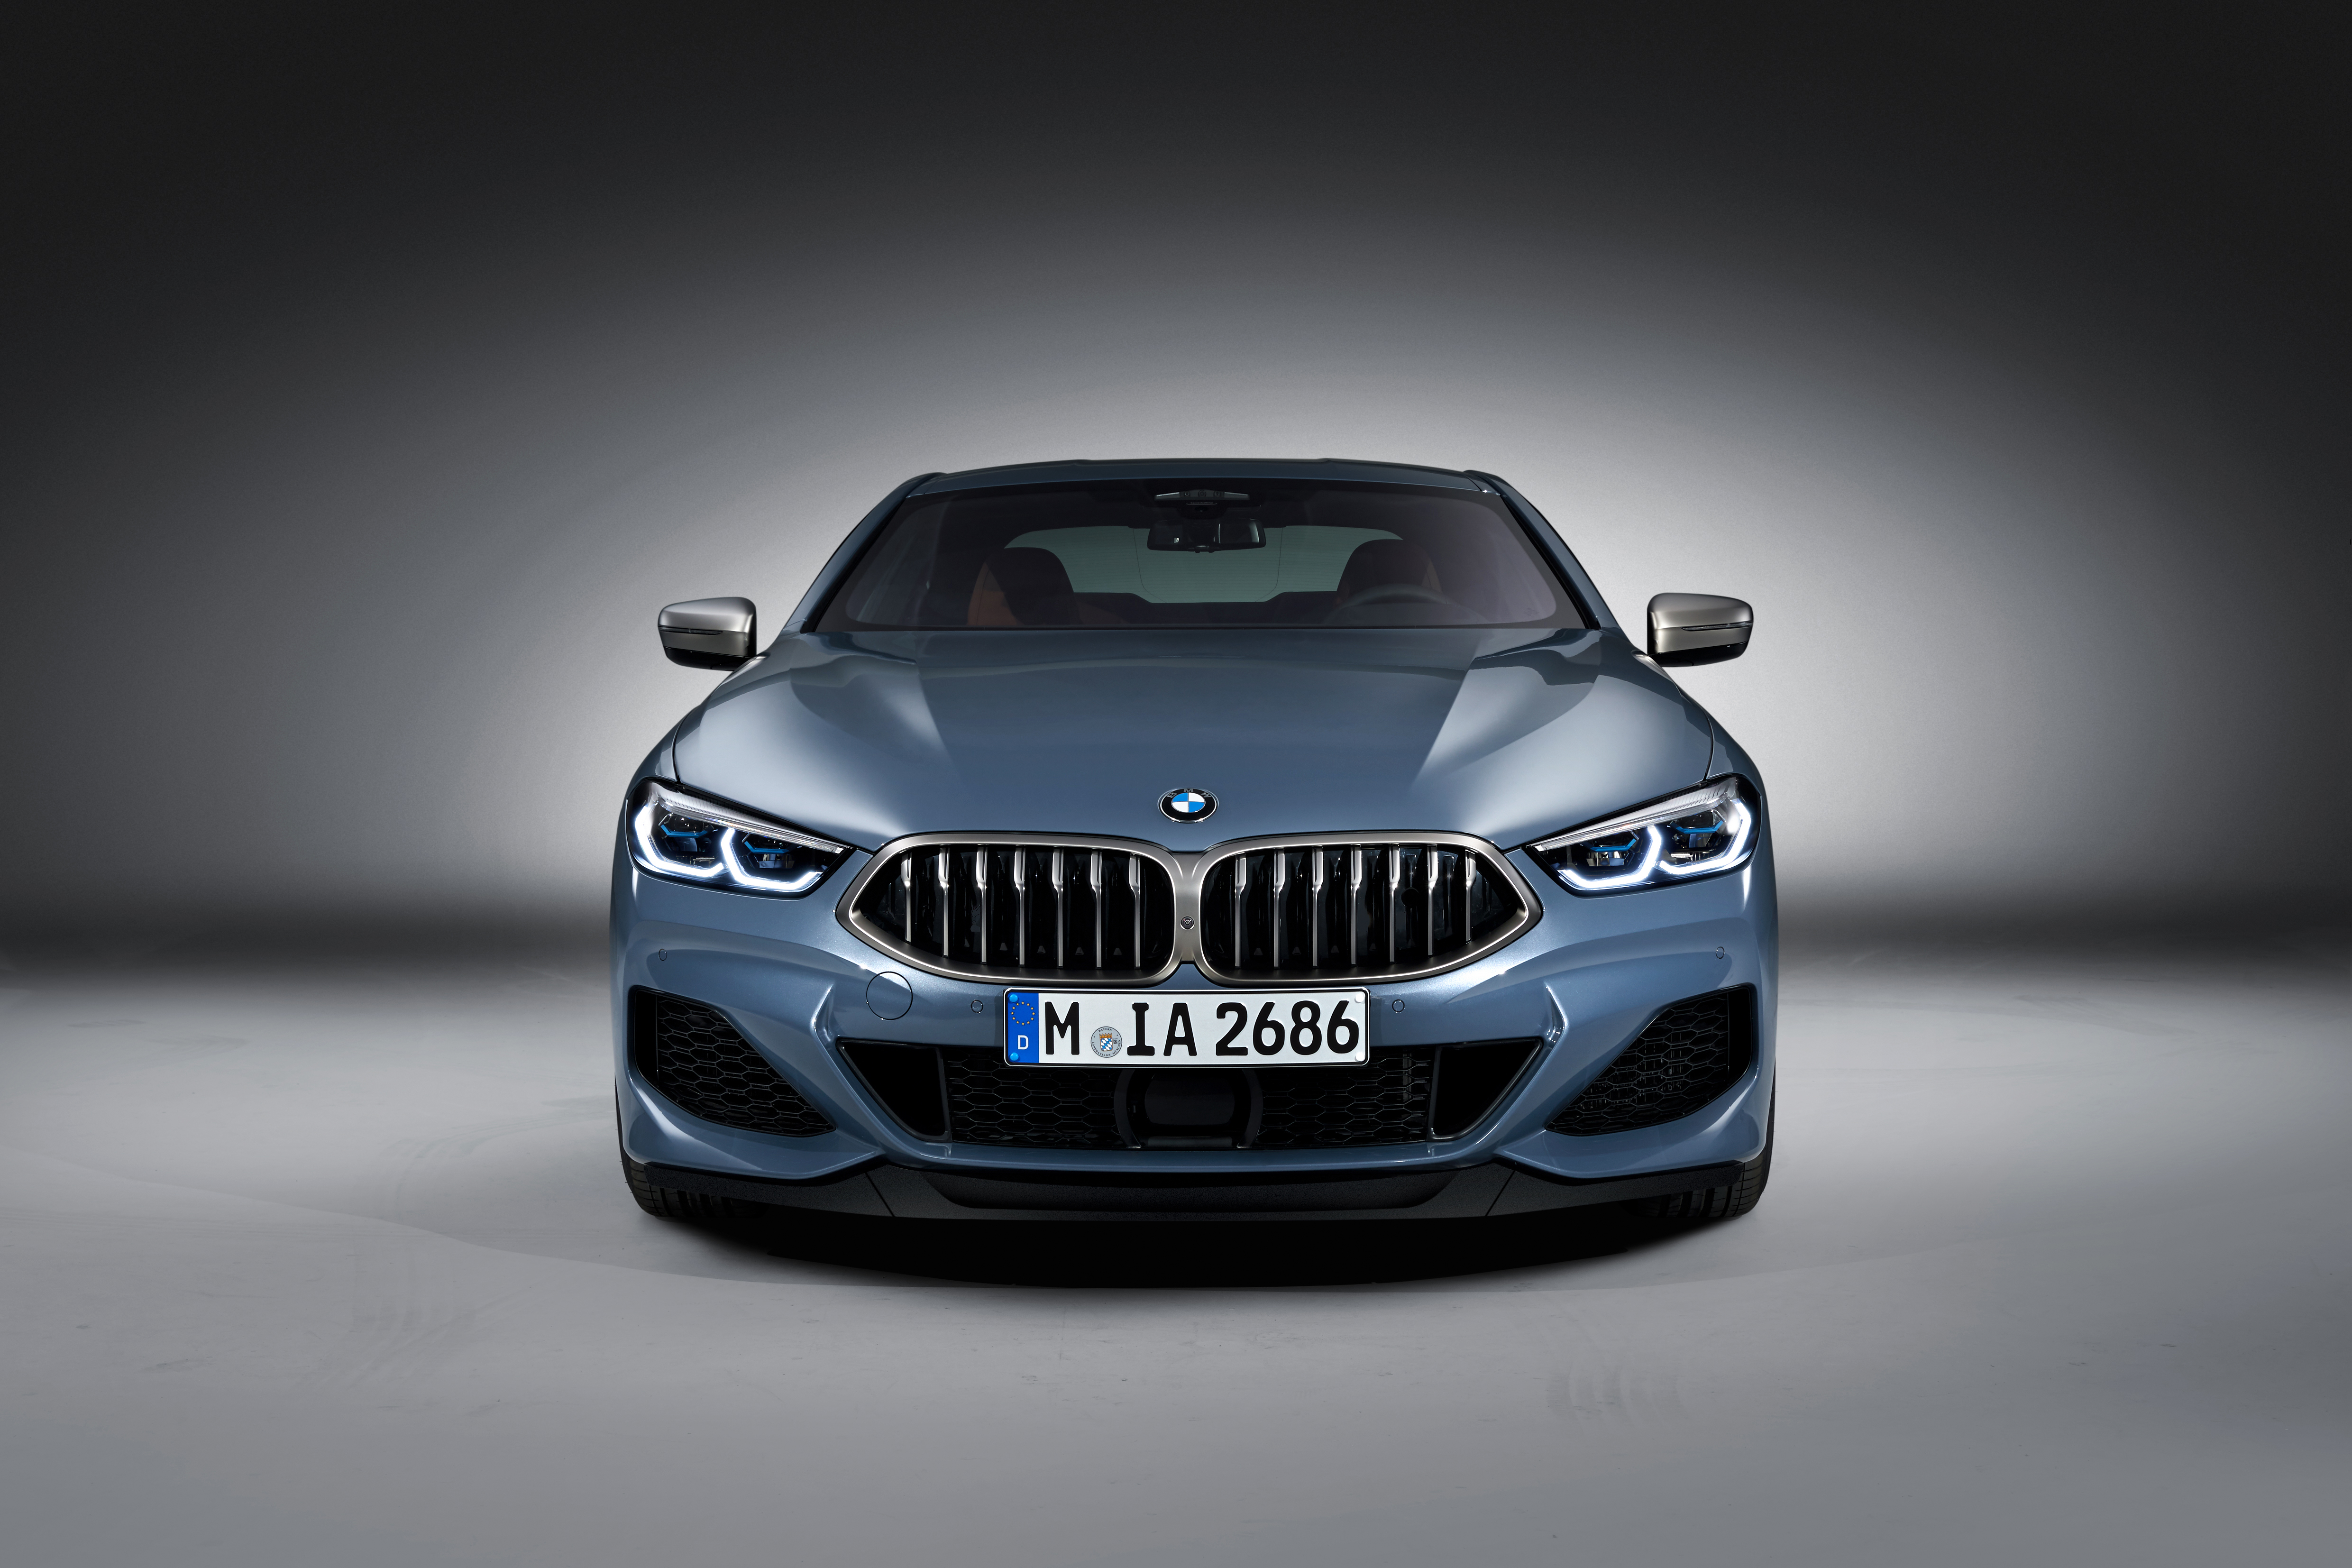 The All-New 2019 BMW 8 Series Coupe - Motor Sports Newswire